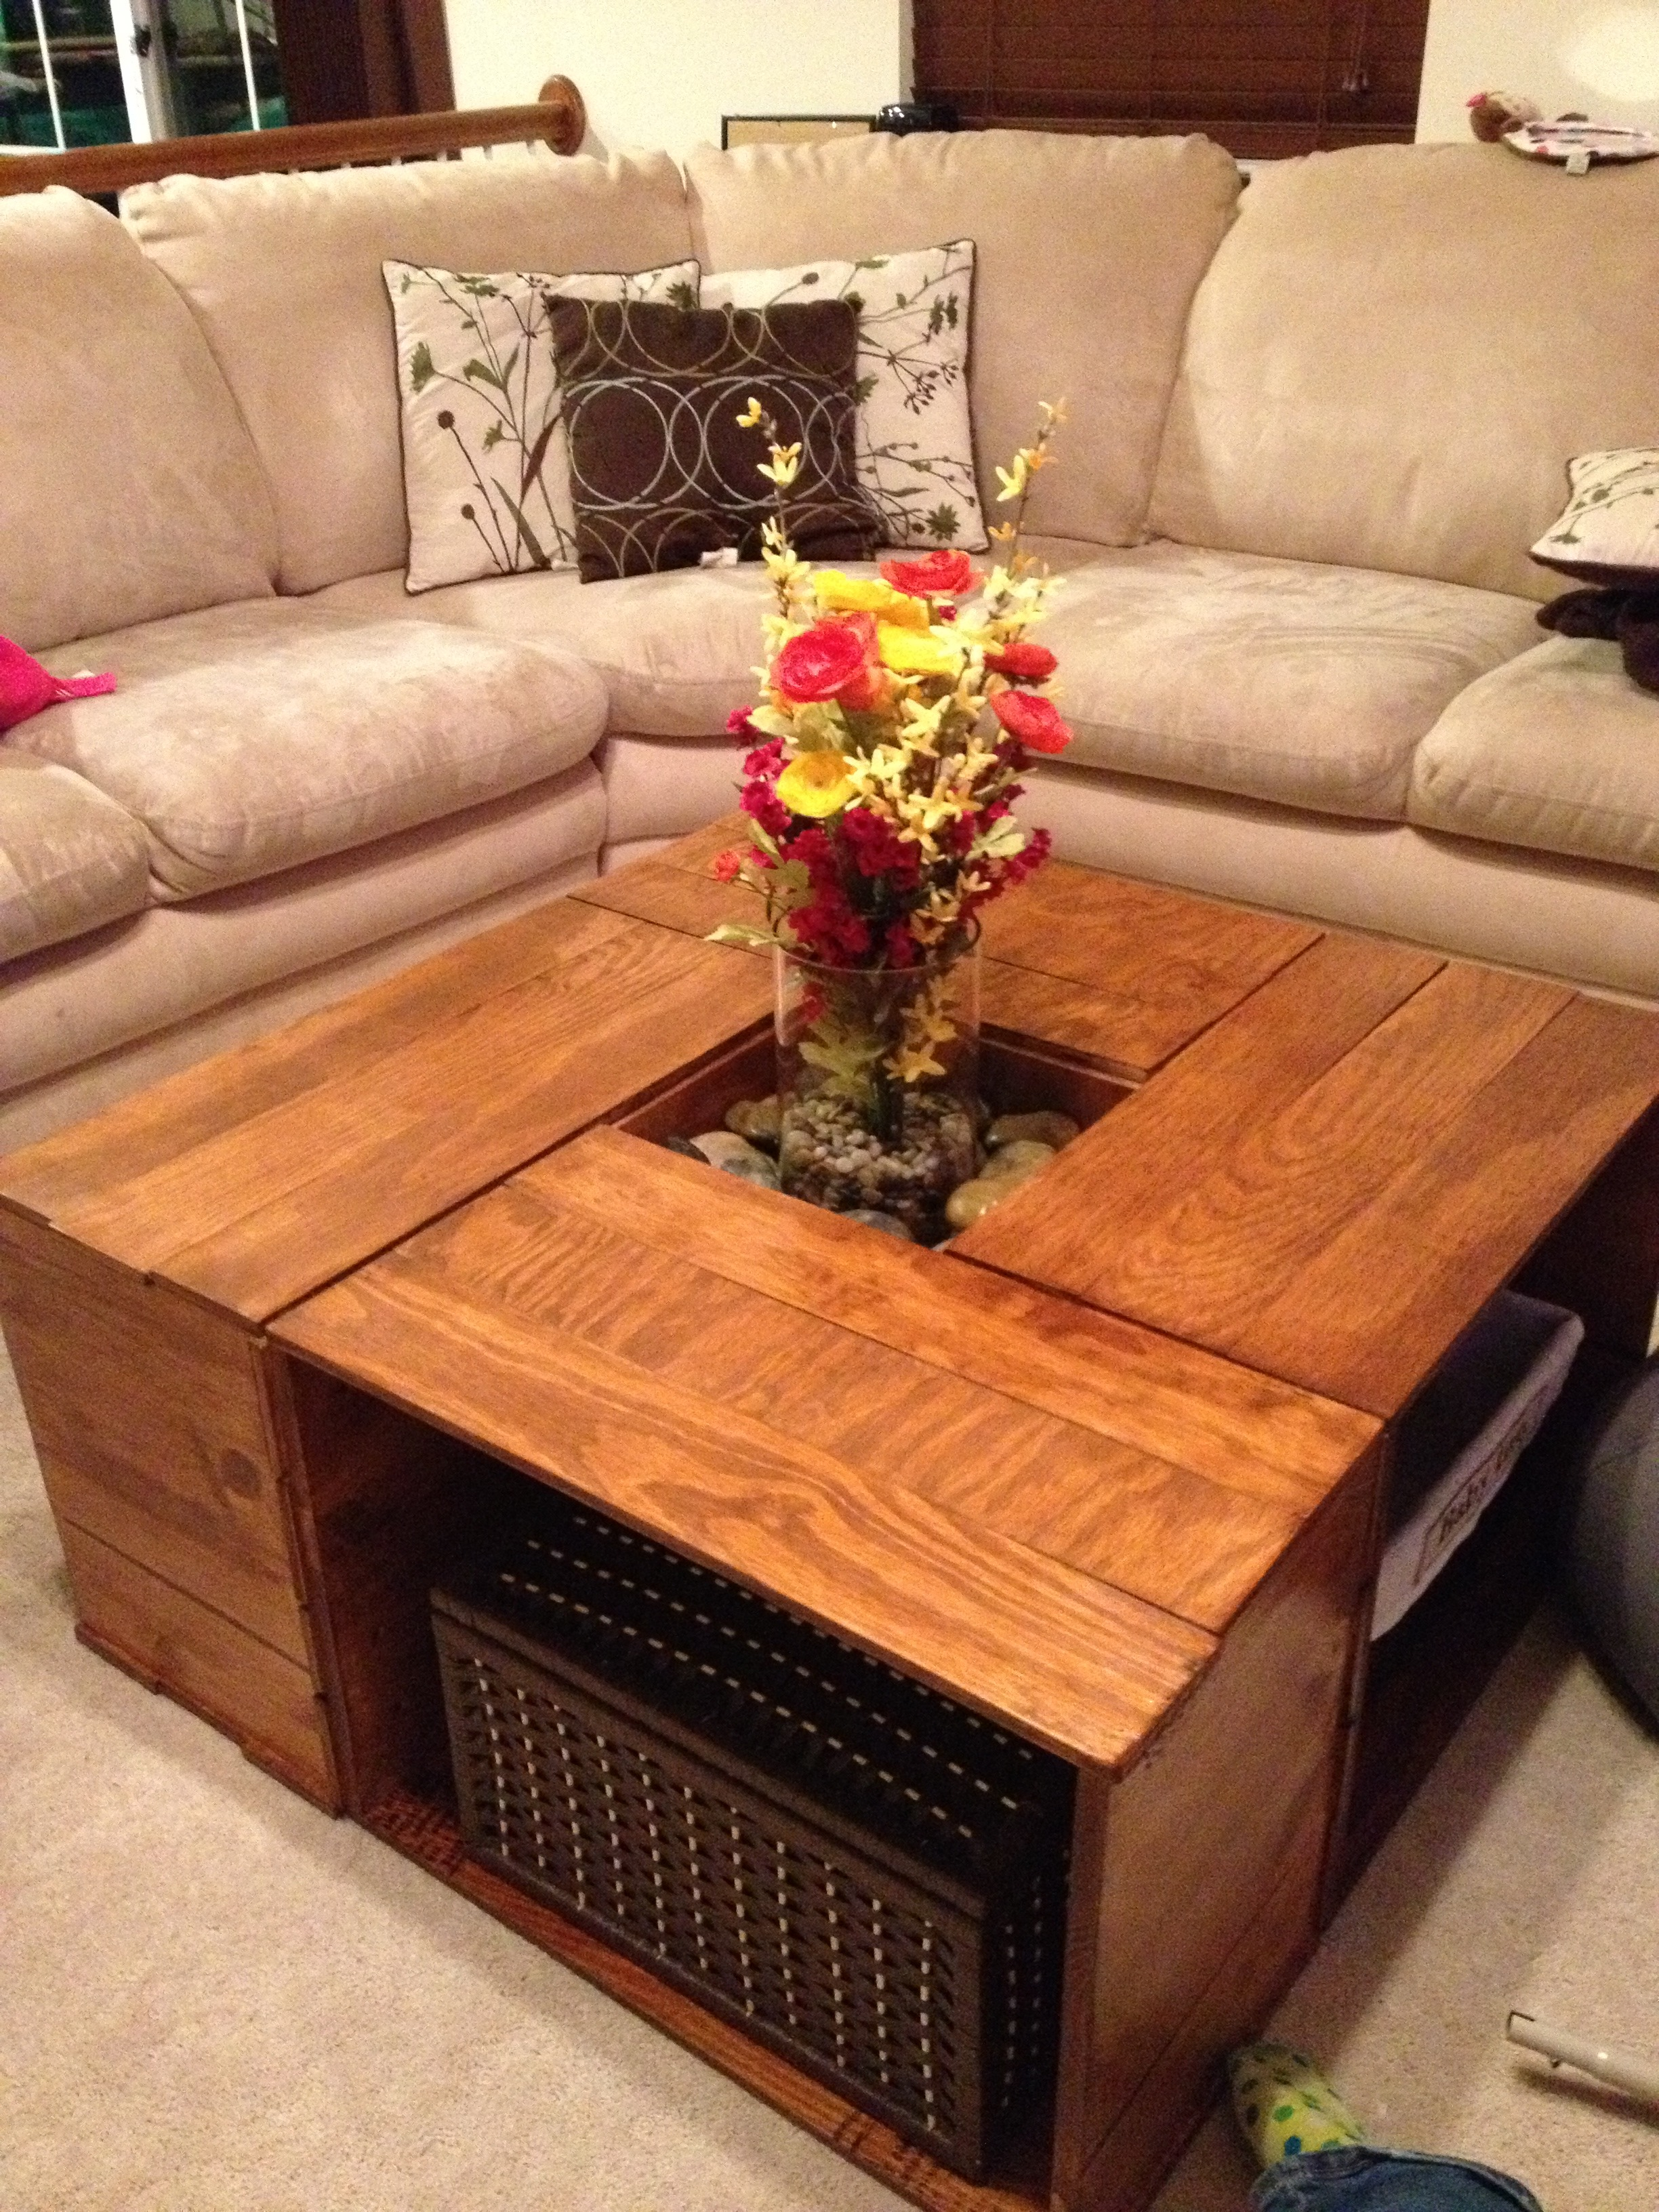 - Crate Coffee Table : 4 Steps (with Pictures) - Instructables